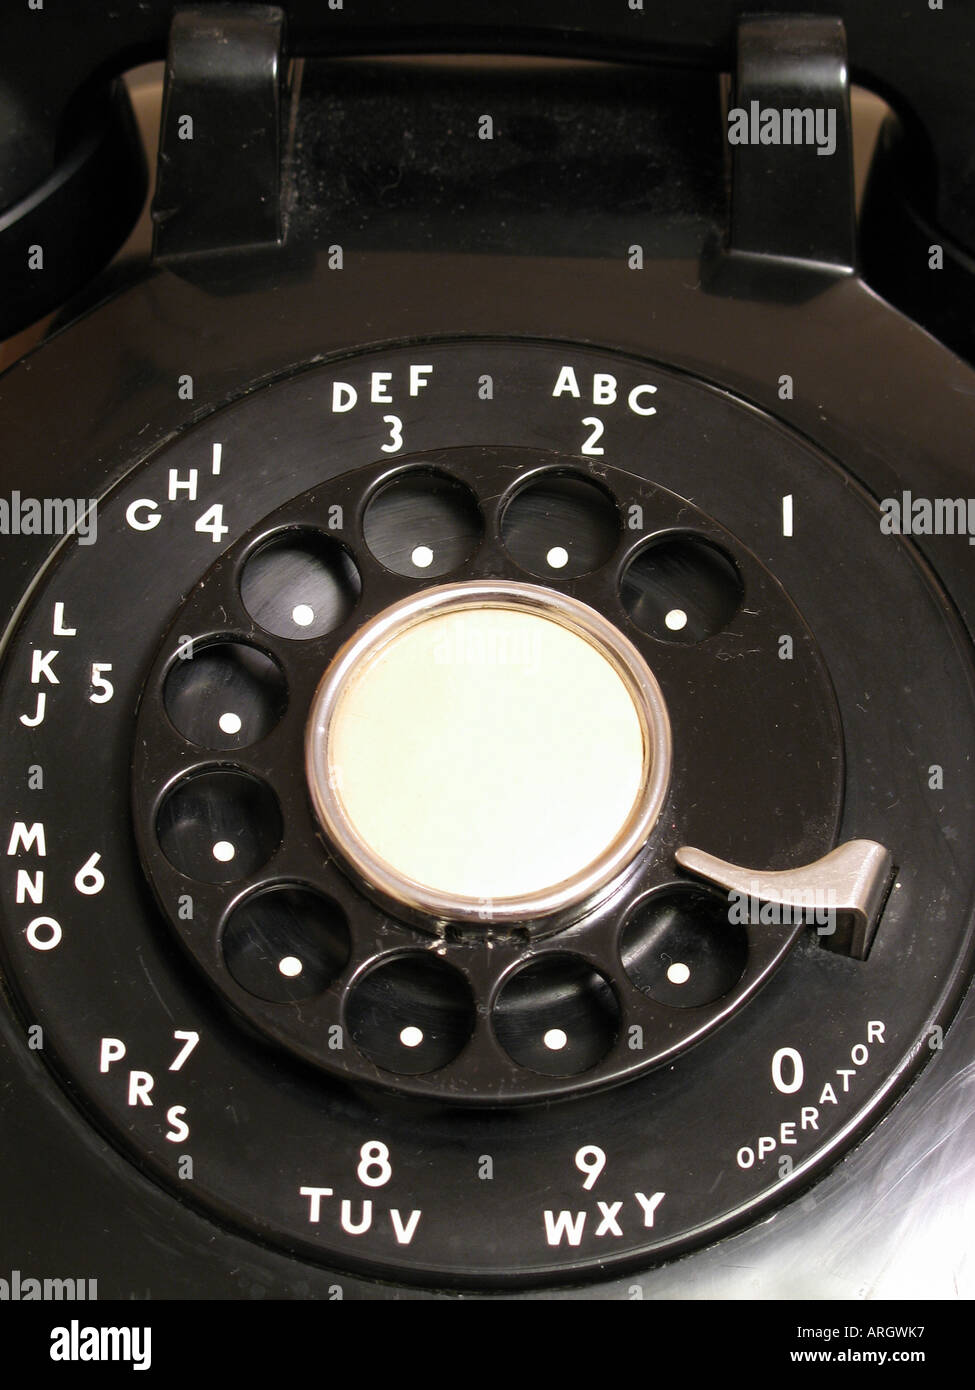 rotary phone dial - Stock Image